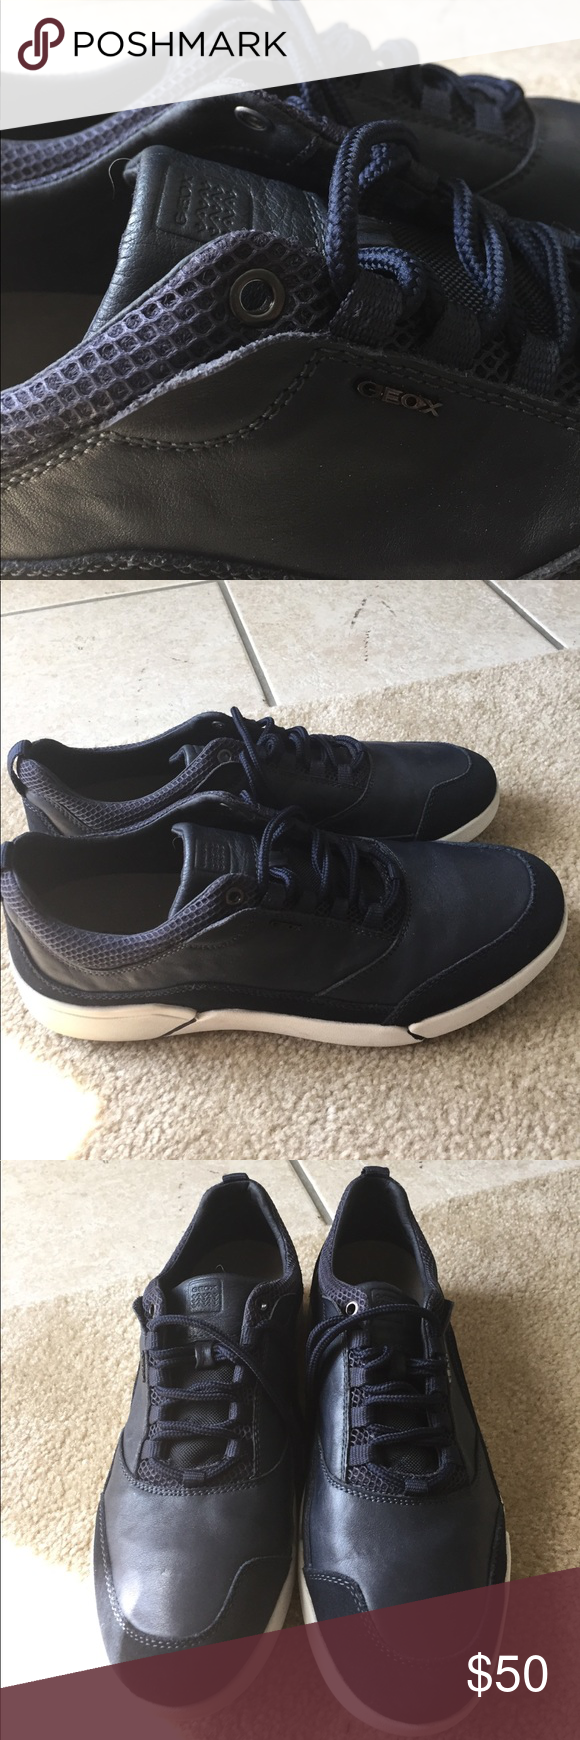 f12bf964a5 GEOX RESPIRA shoes size 12.5 Breathable,comfortable,antibacterial. ITALIAN  PATENT.like new condition.leather and suede.great shoes. Geox Shoes